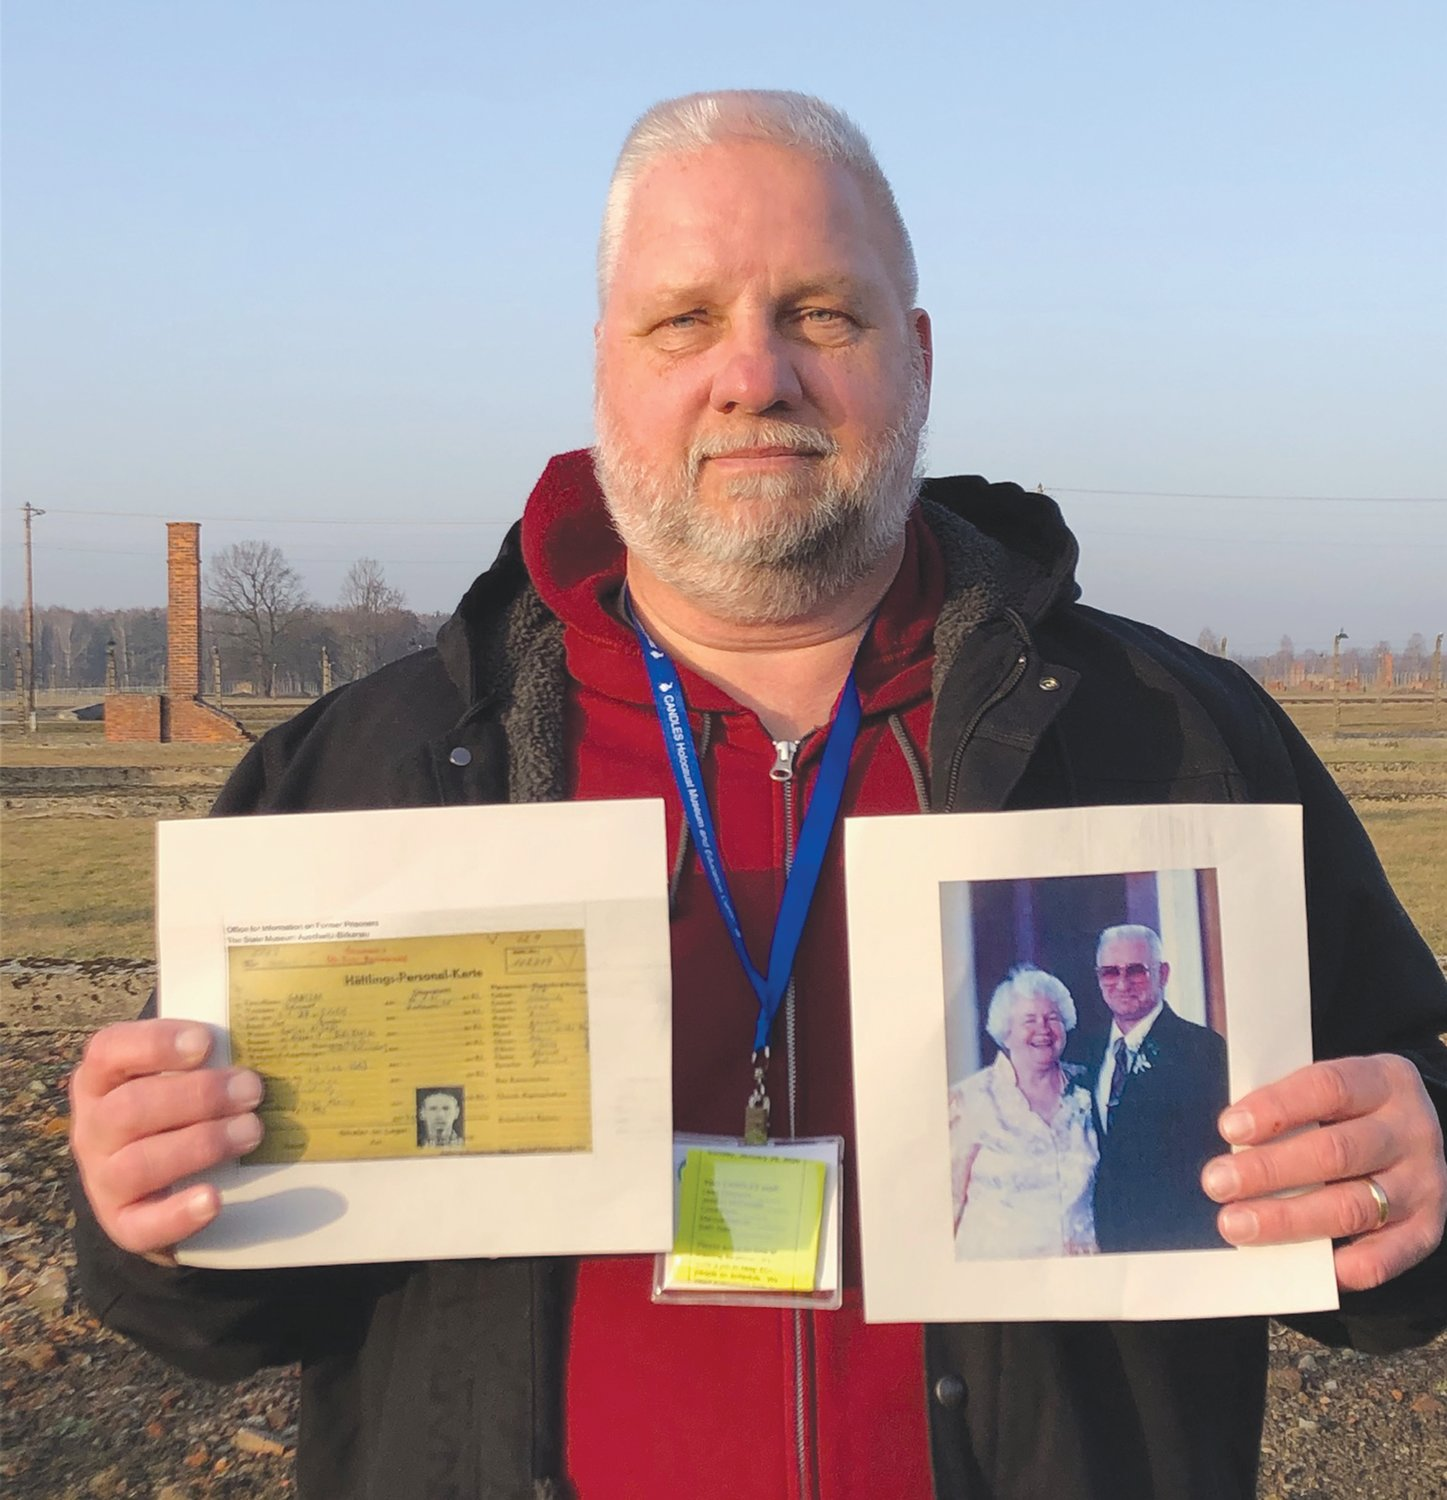 Tony Gonczarow, a Southmont High School teacher, holds his father's record and a photograph of his parents during the 75th anniversary of the liberation of Auschwitz on Monday.